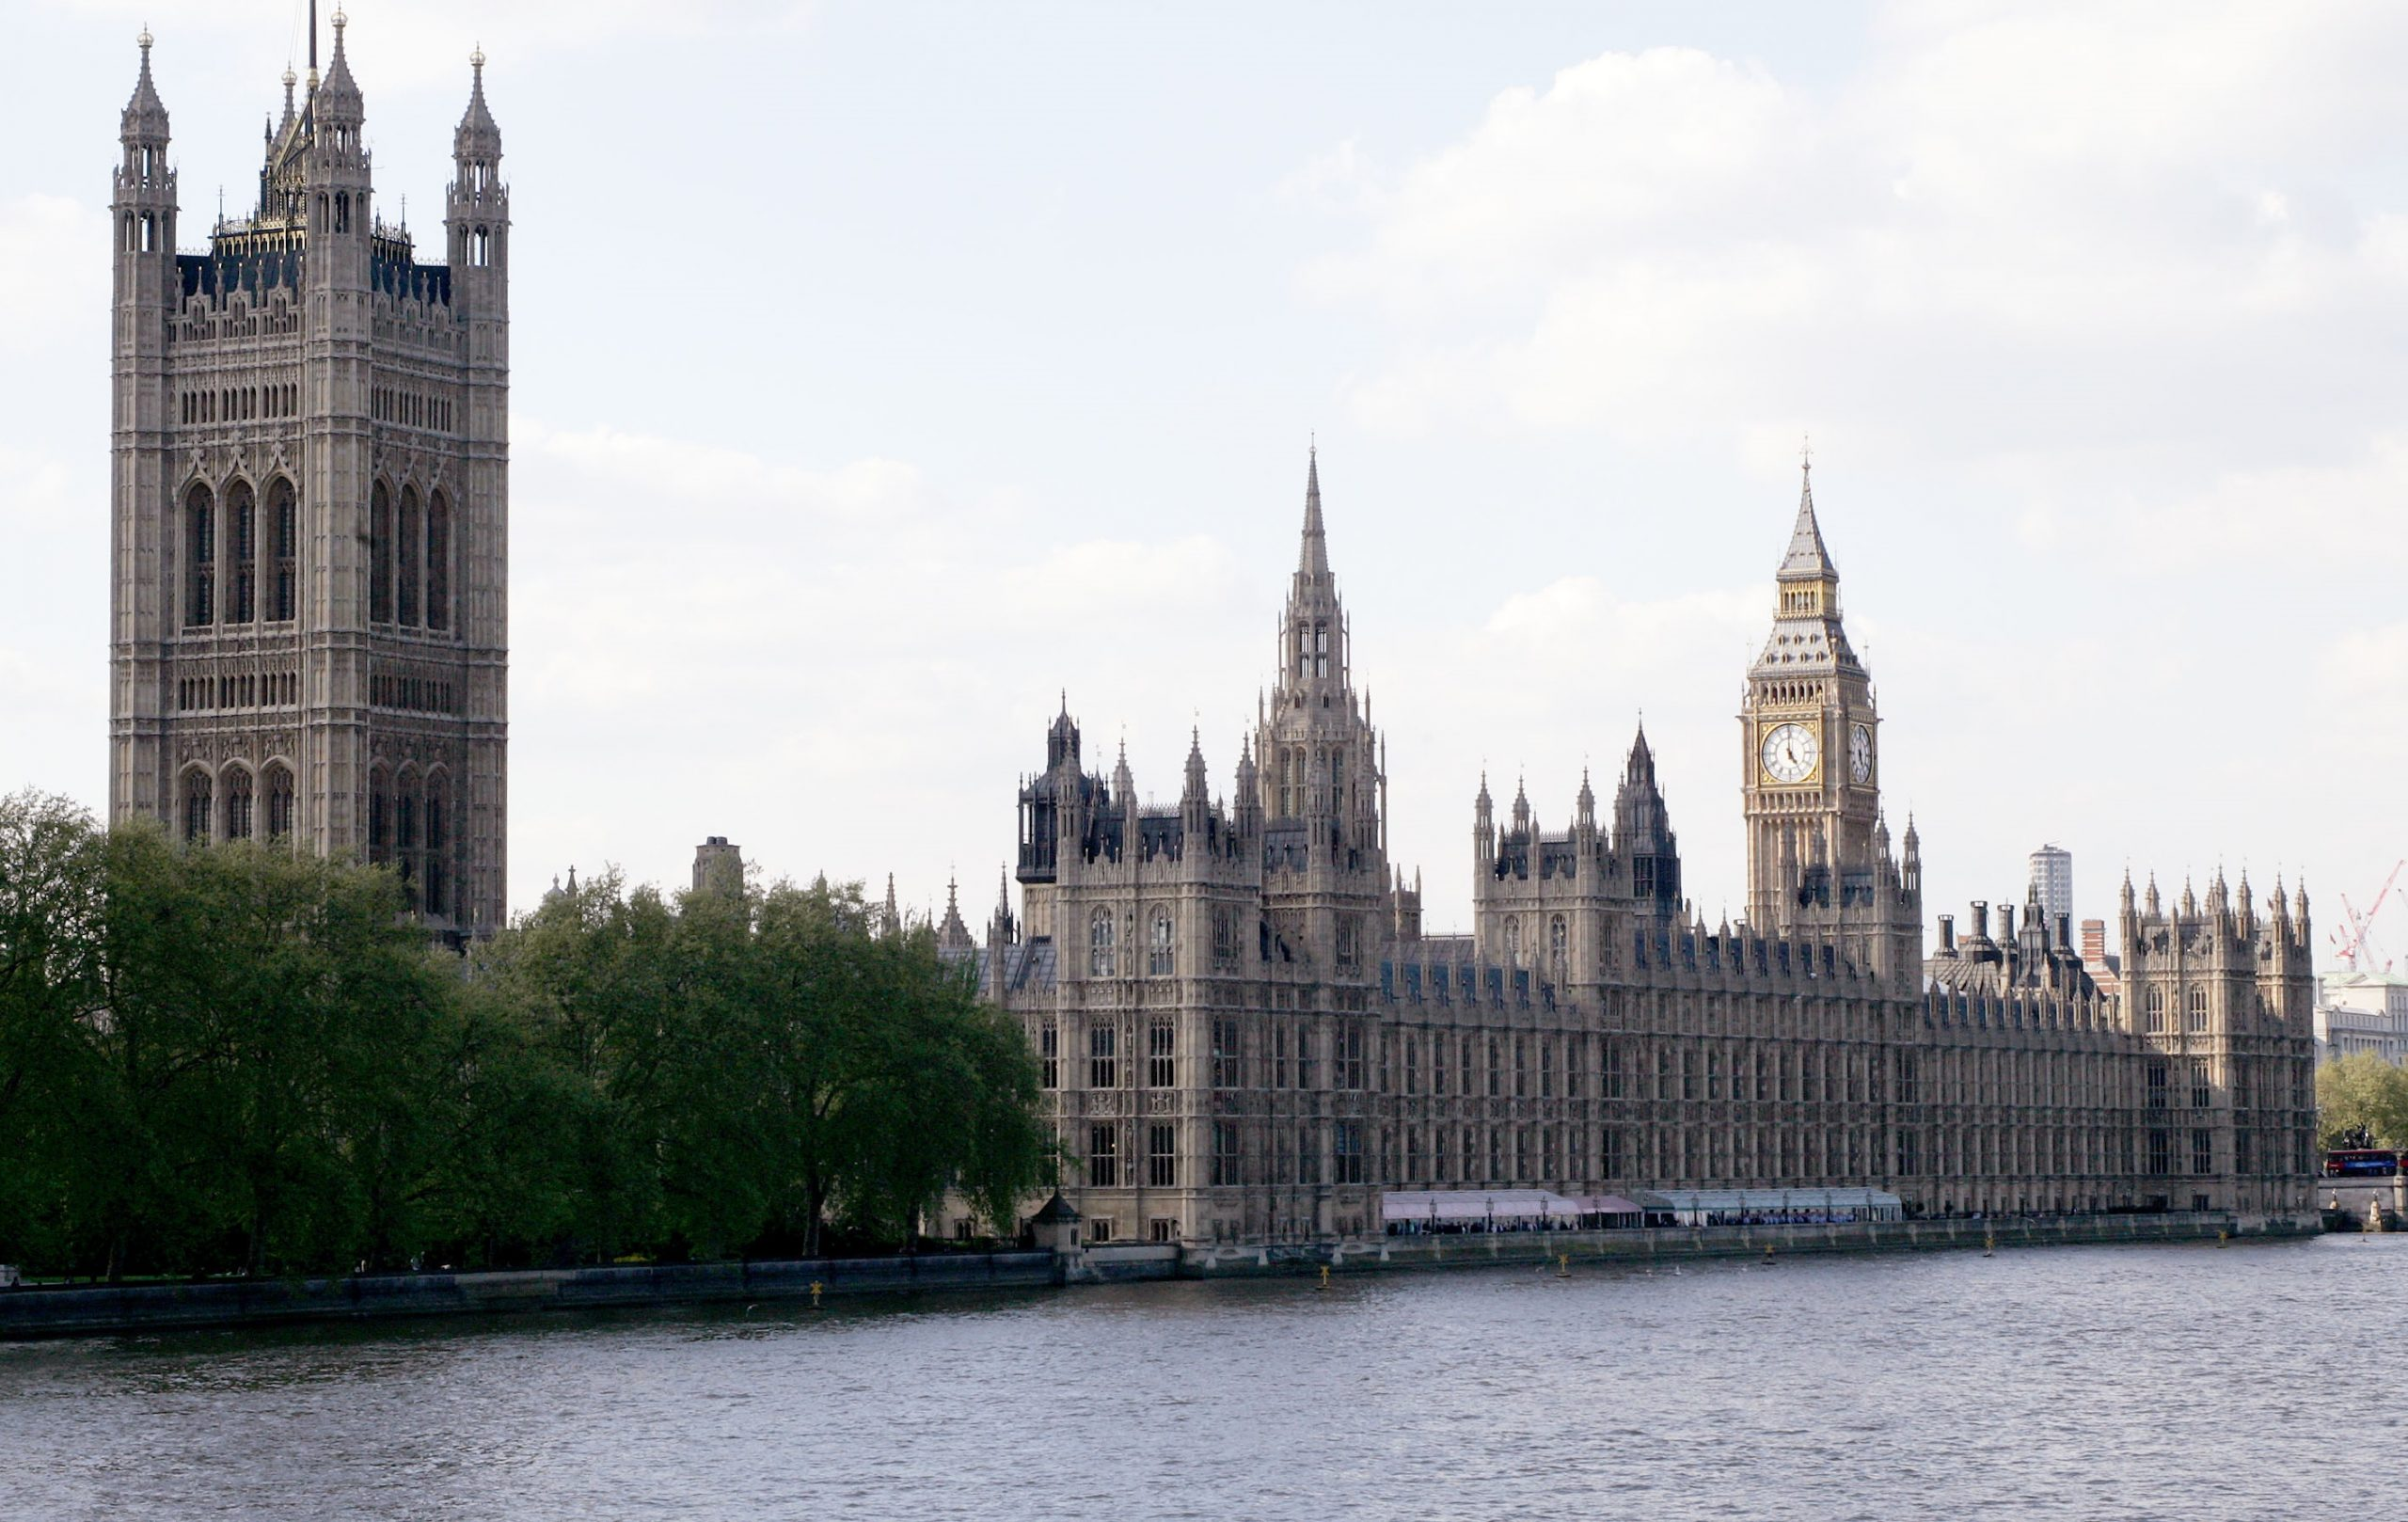 Image of the River Thames and the Parliament